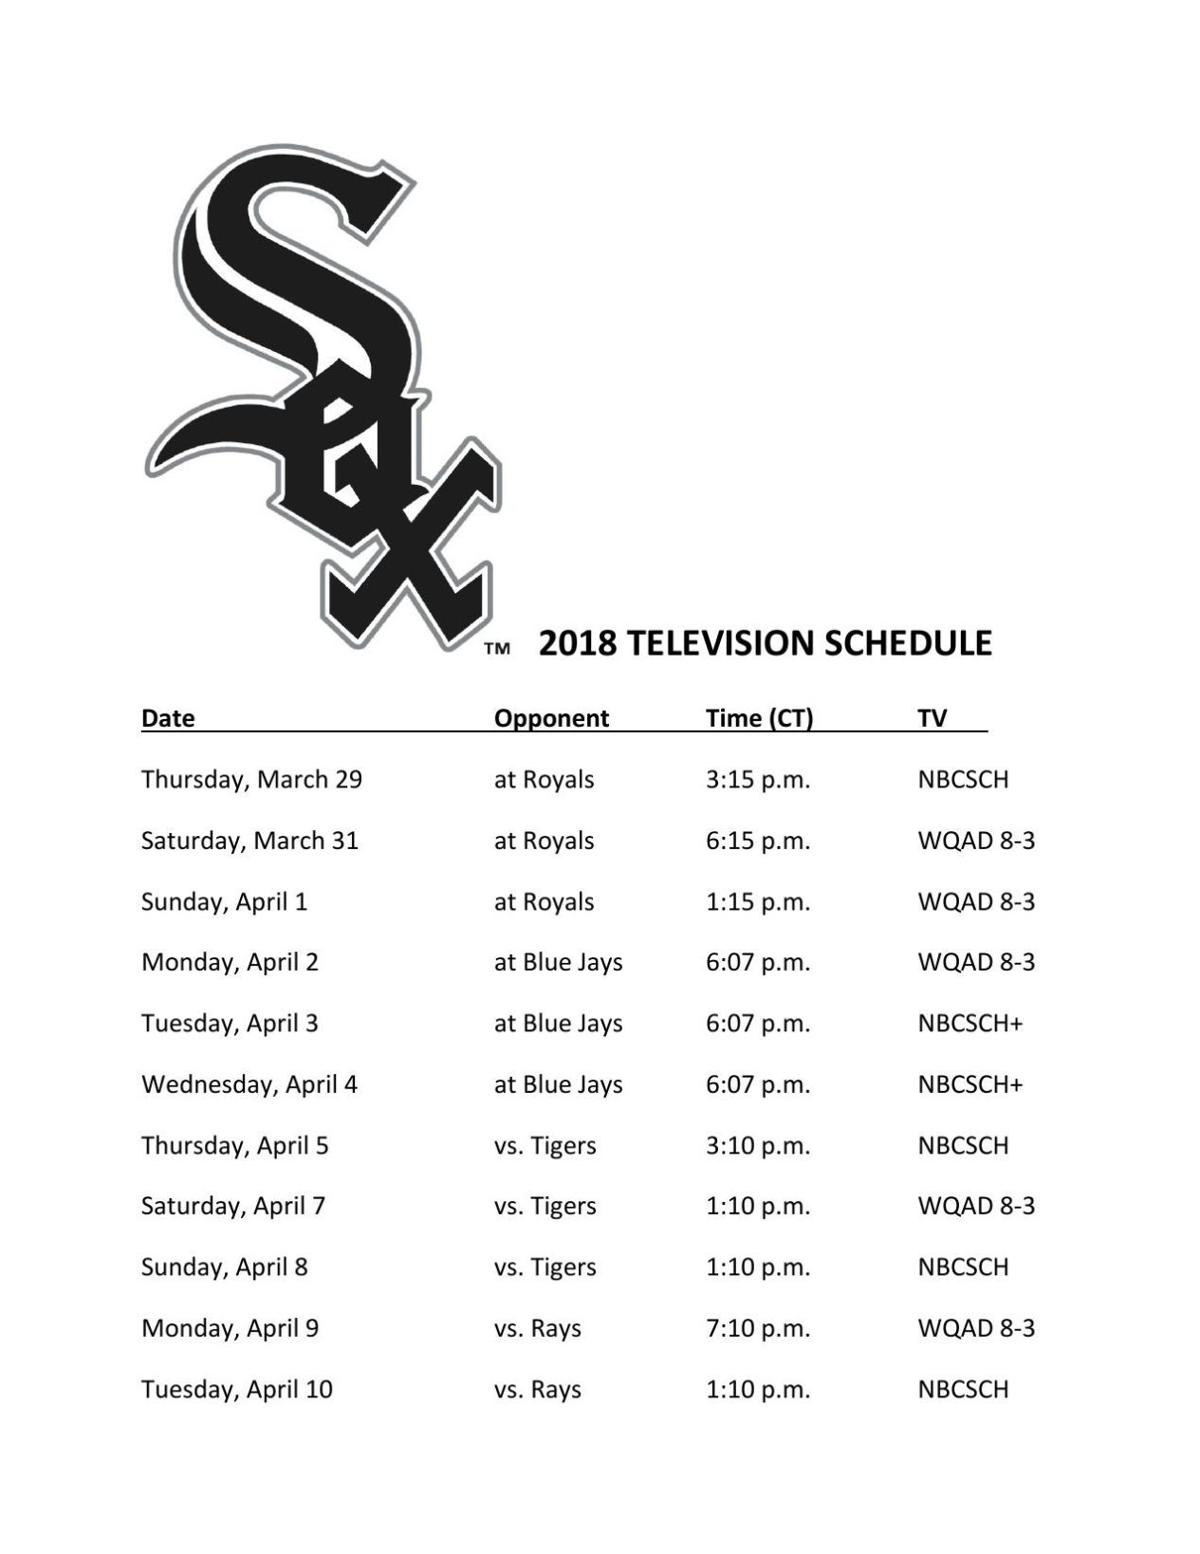 White Sox 2018 TV schedule